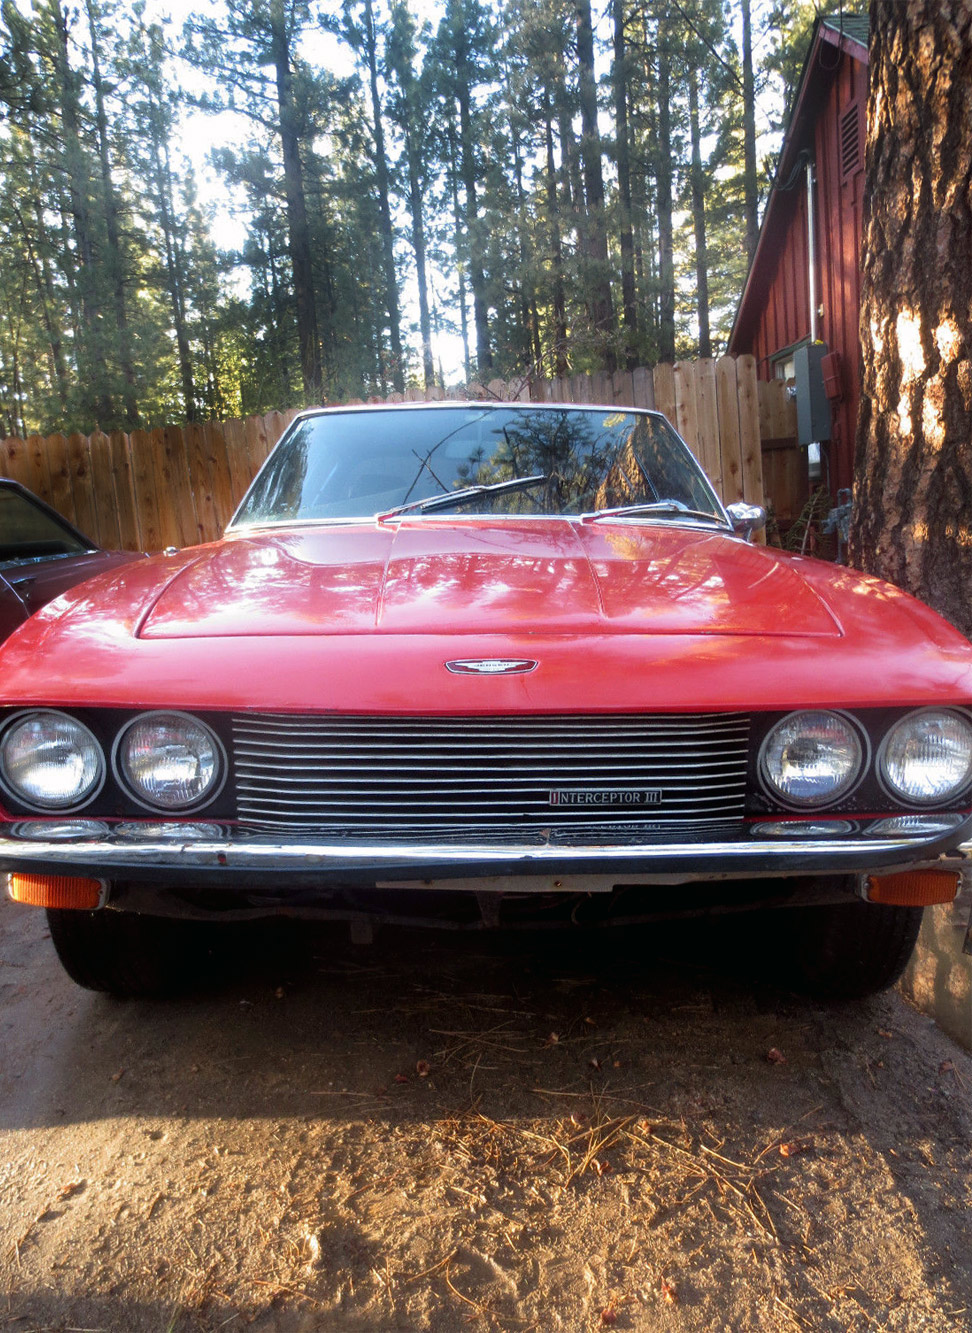 1973-Jensen-Interceptor-III-Barn-Find-111